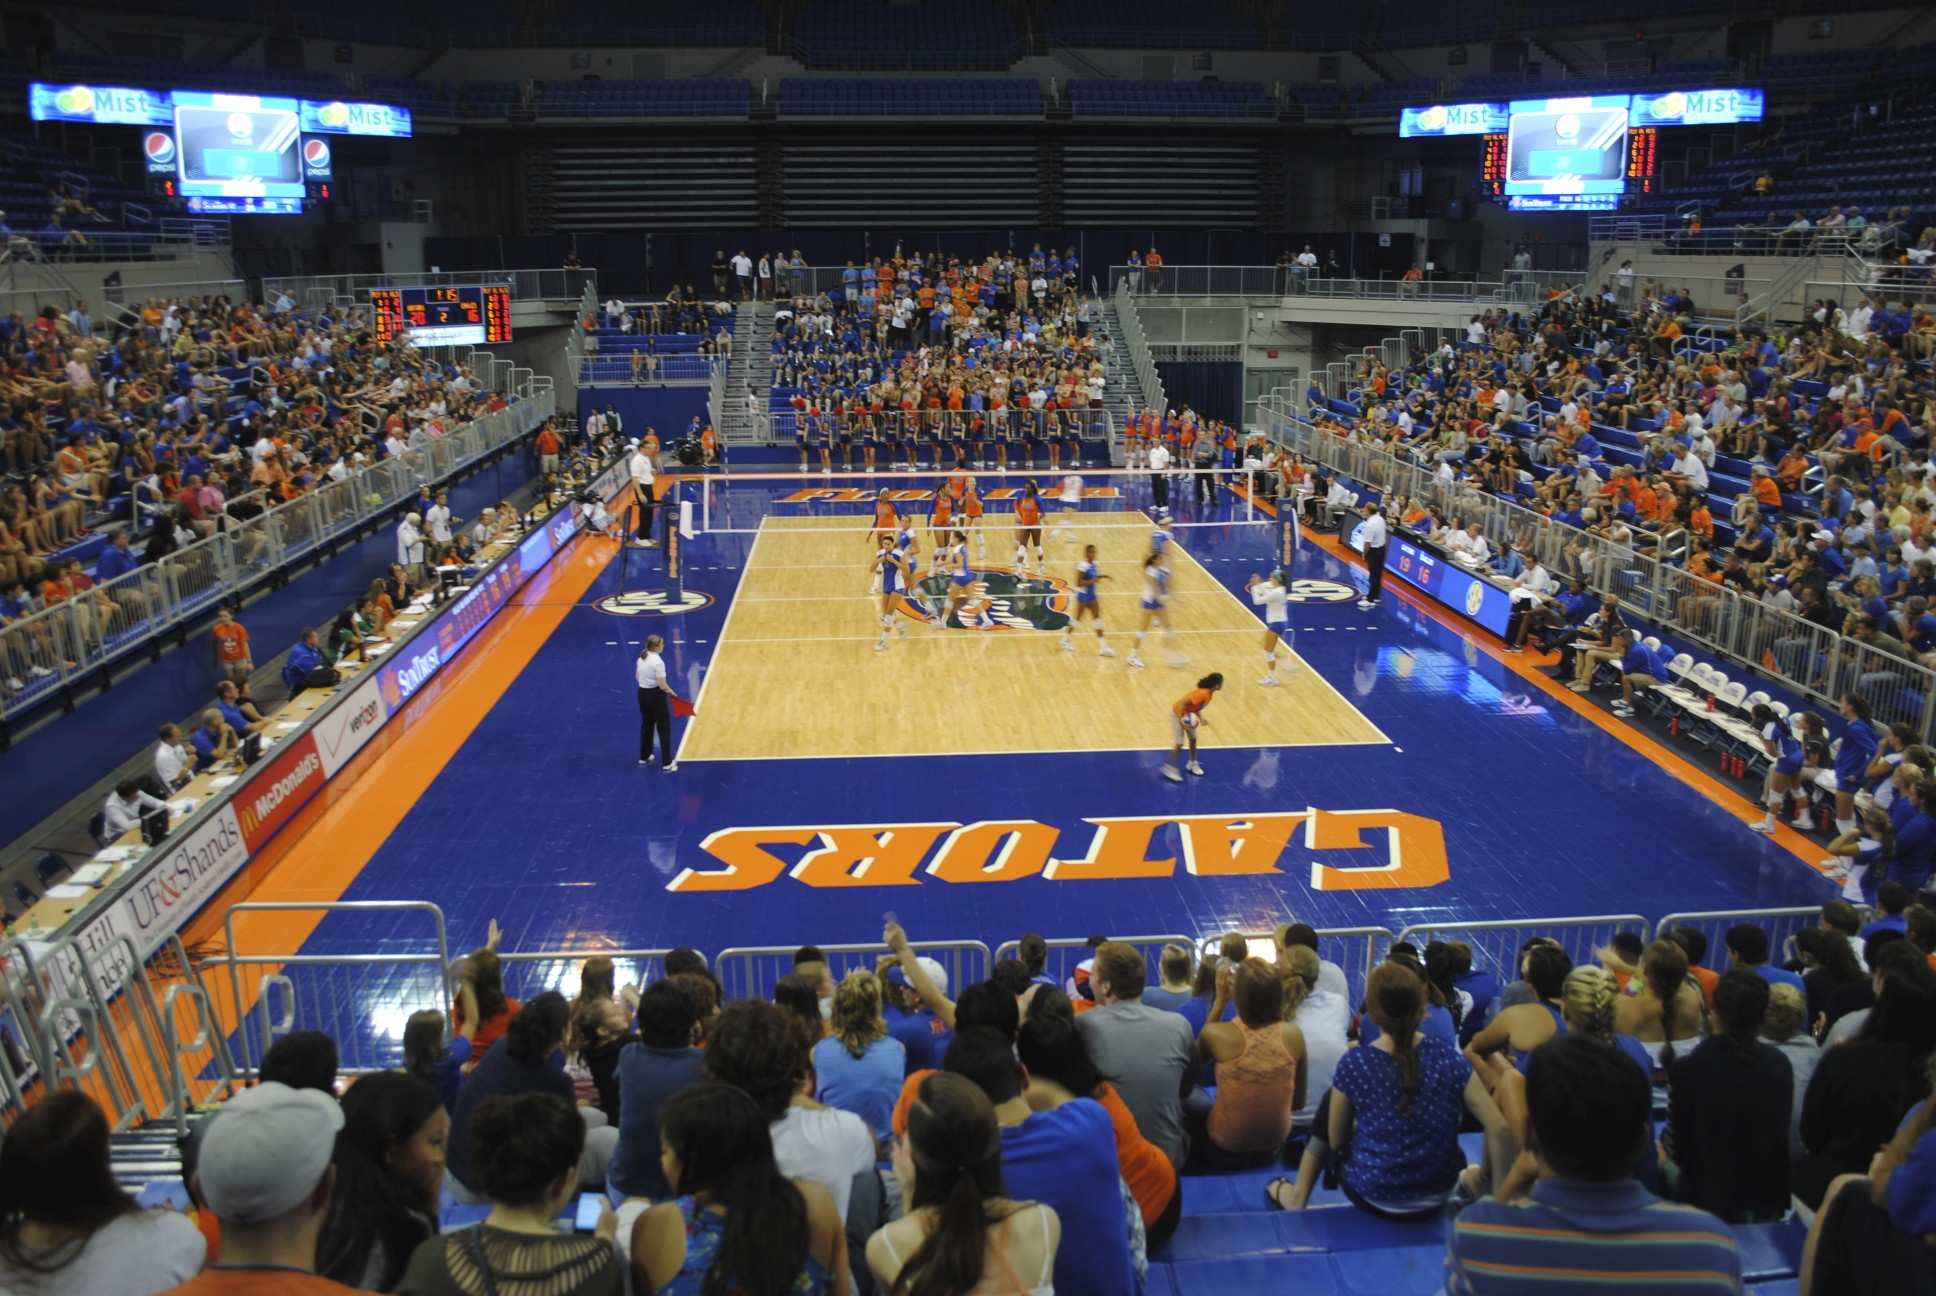 2,825 Gator fans came out to support the Florida Gators Volleyball team for the preseason tournament.